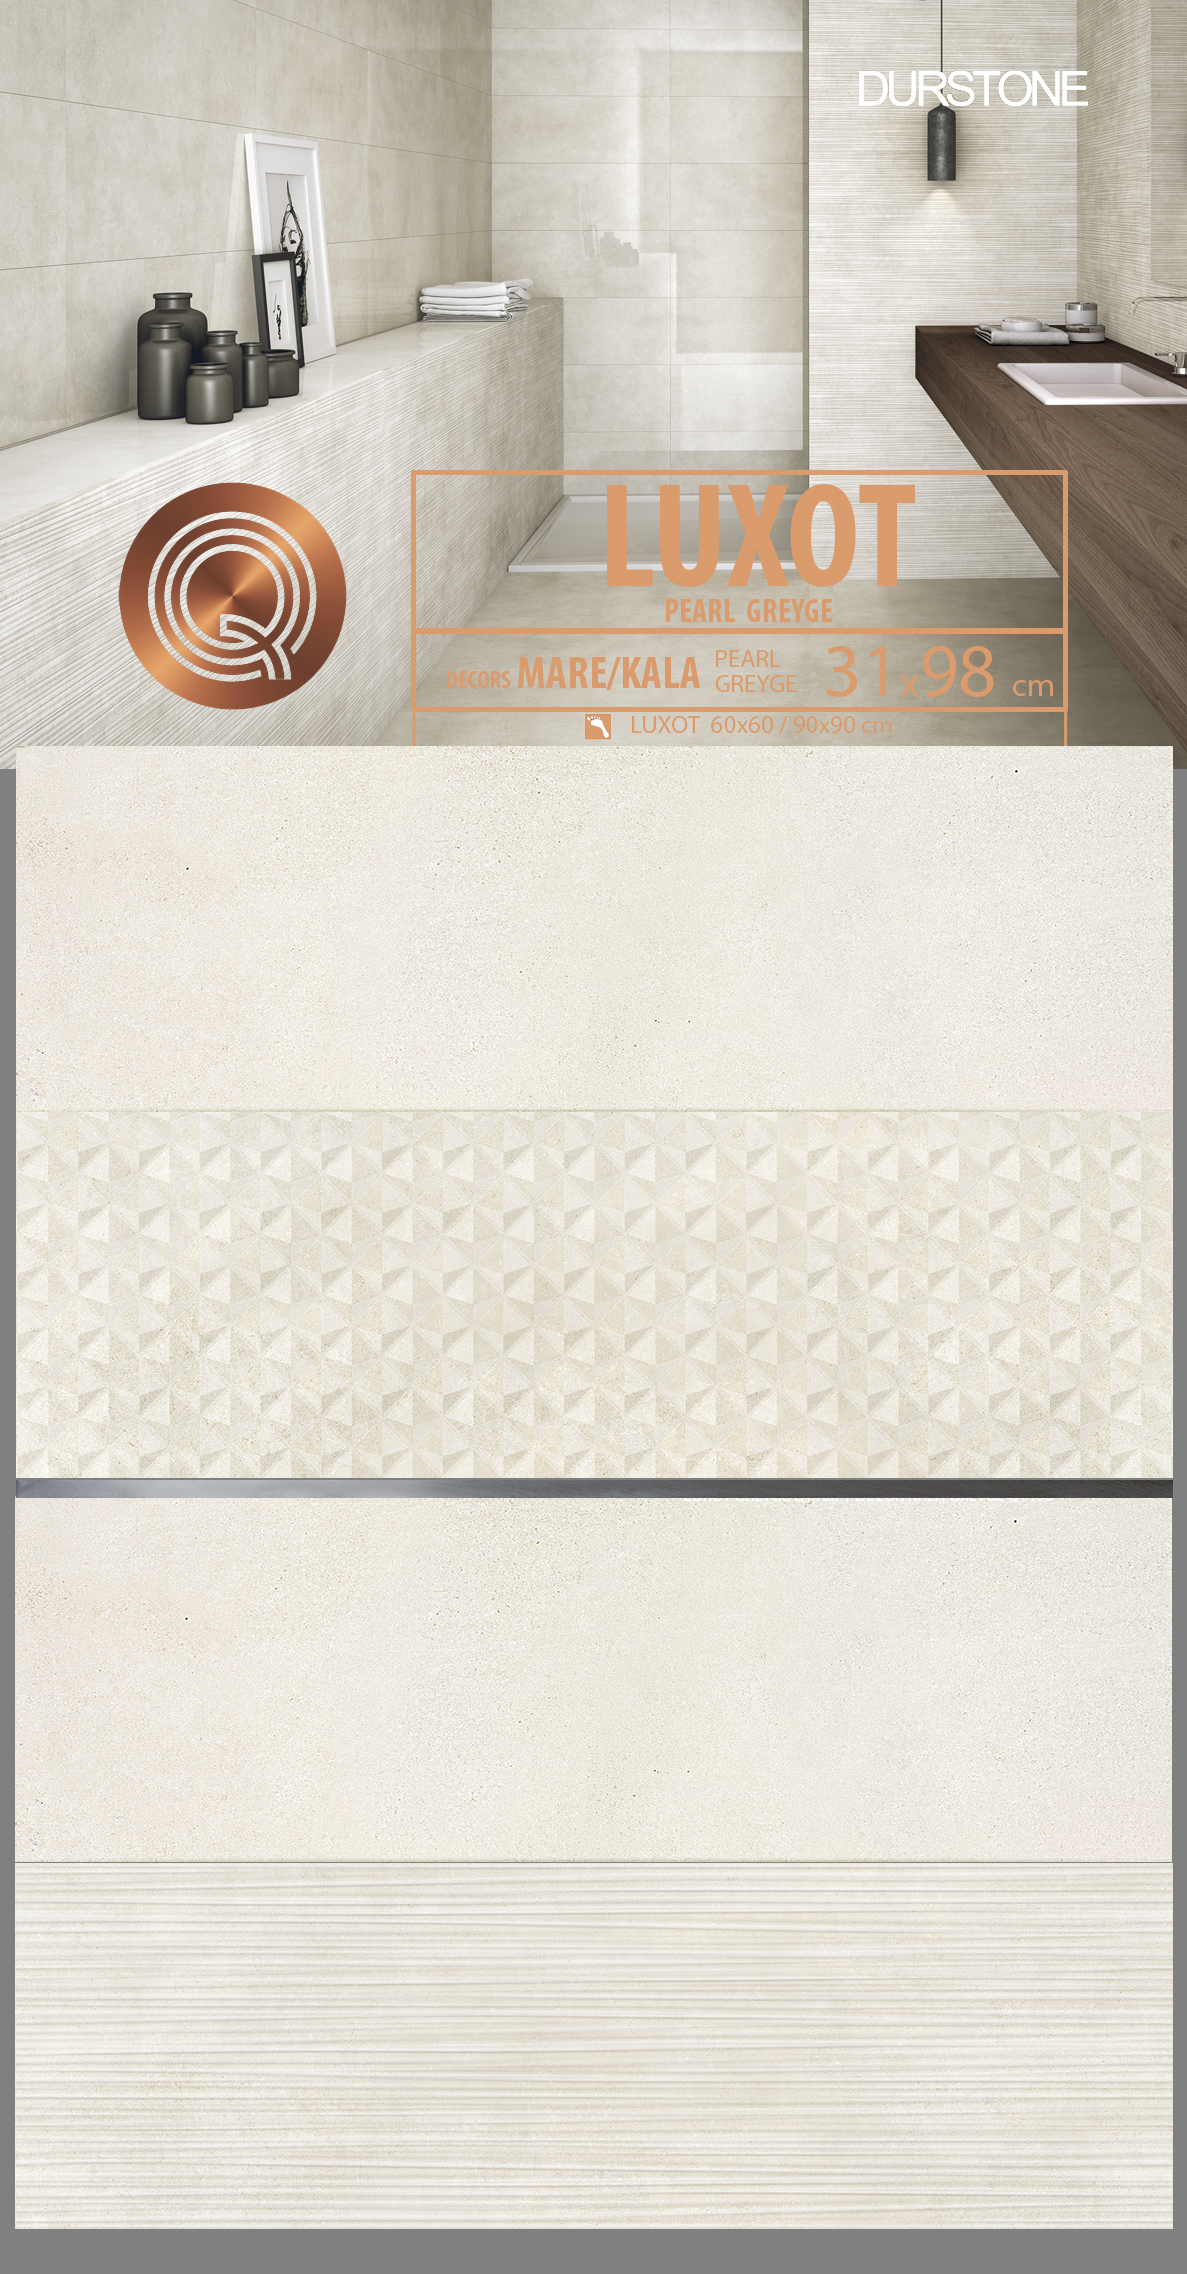 5664 RV PANEL MIX LUXOT KALA / MARE PEARL Cod. 5664